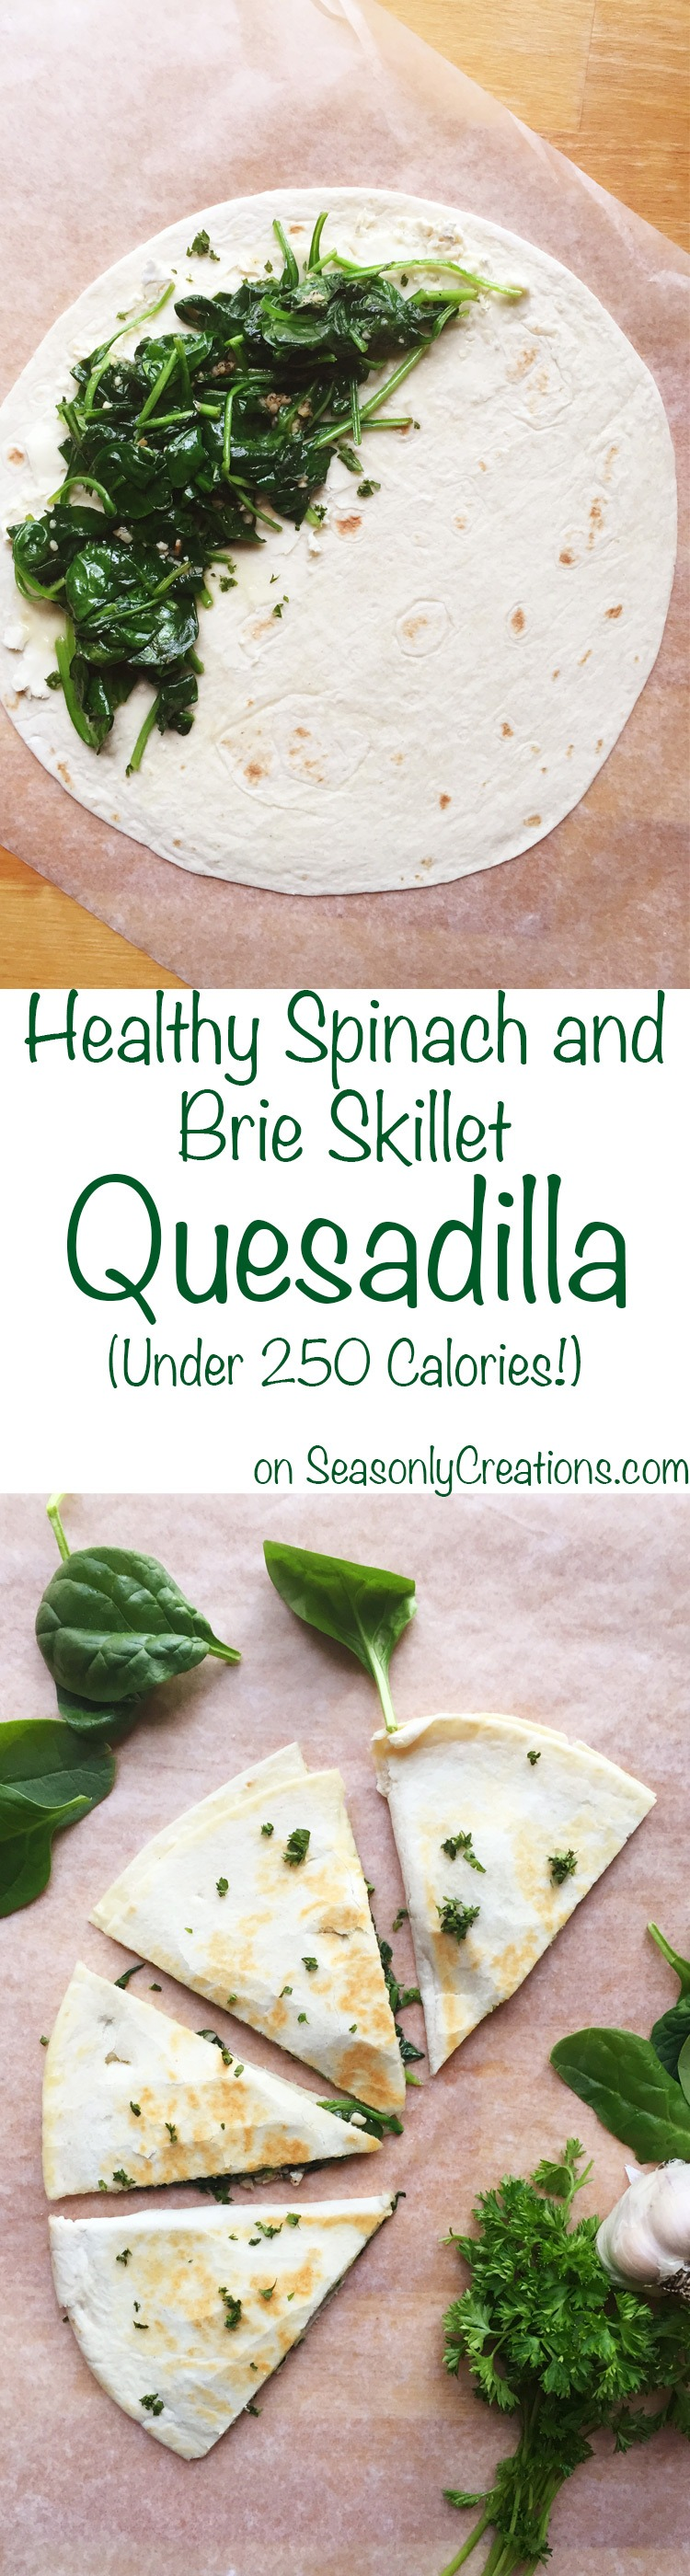 healthy spinach and brie skillet quesadilla under 250 calories